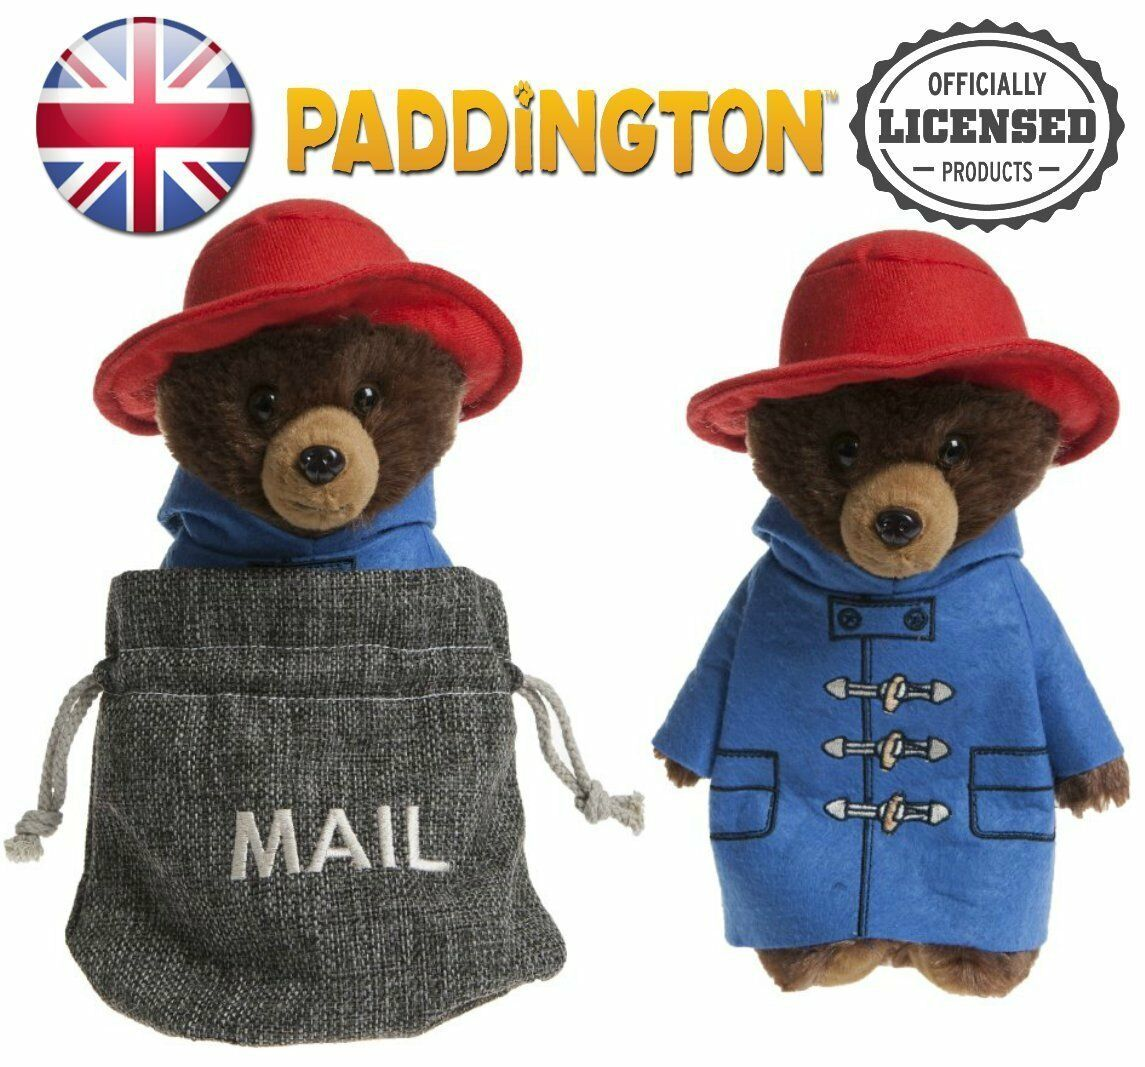 Set of 2 PADDINGTON BEAR MAIL BAG PLUSH TOY Kids Soft Plush Bear Teddy Toy Gift